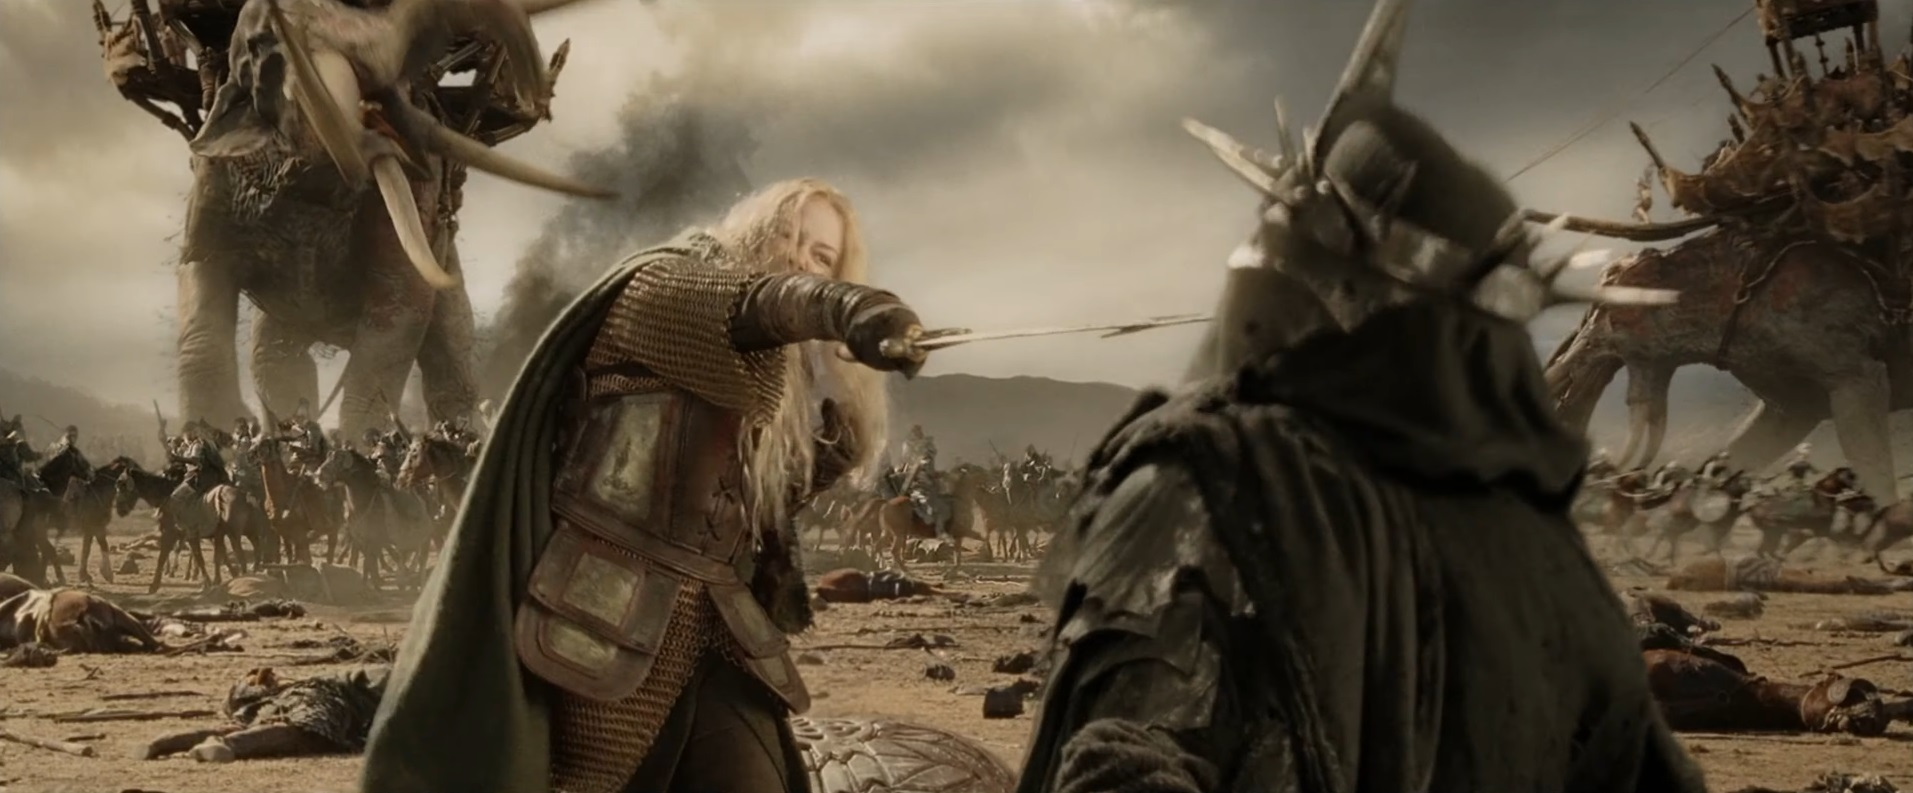 Eowyn, from the Peter Jackson movie